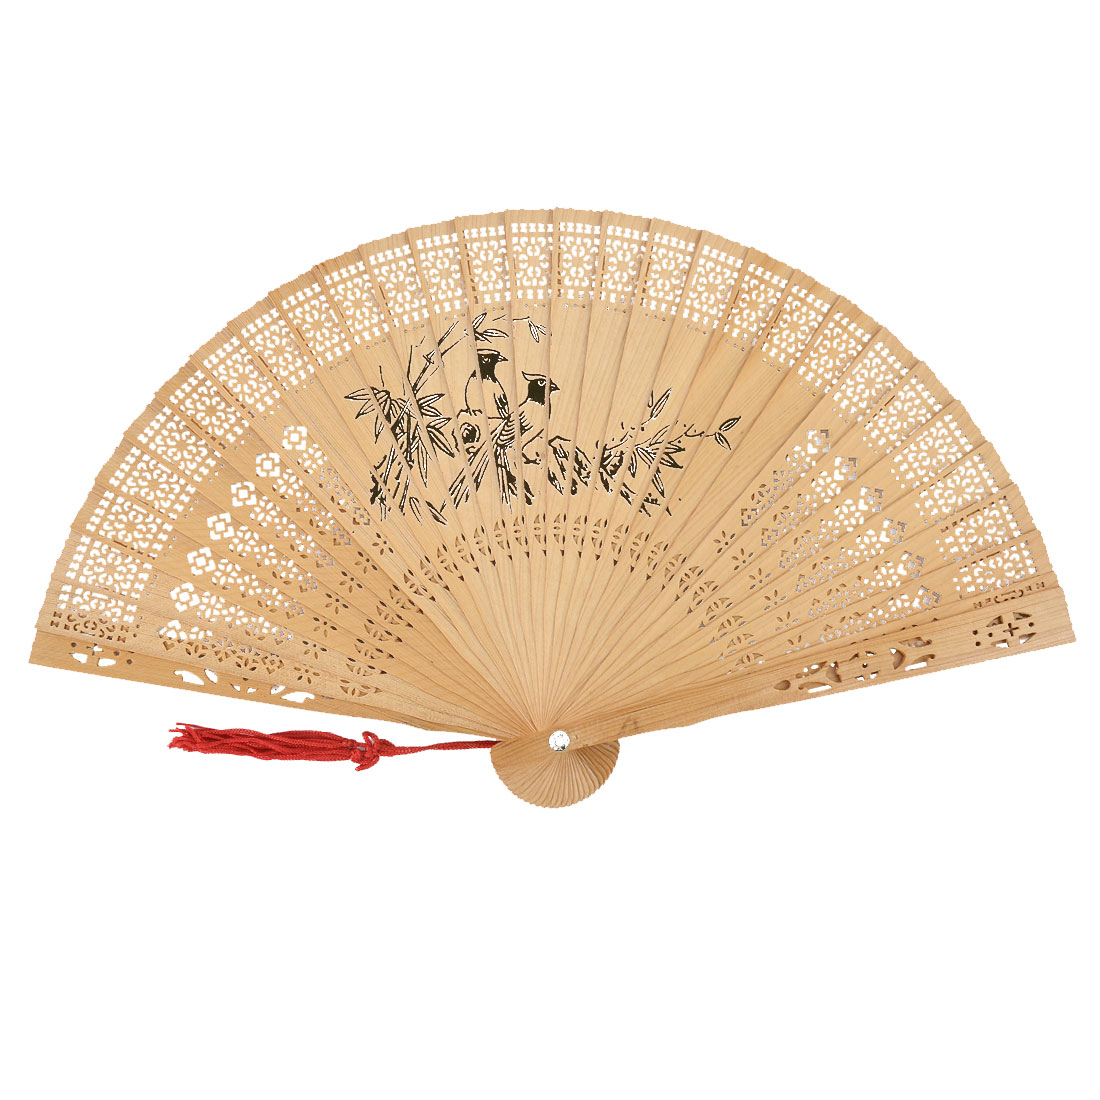 Ladies Summer Wood Vintage Retro Style Printing Design Tassel Pendant Folding Hand Fan